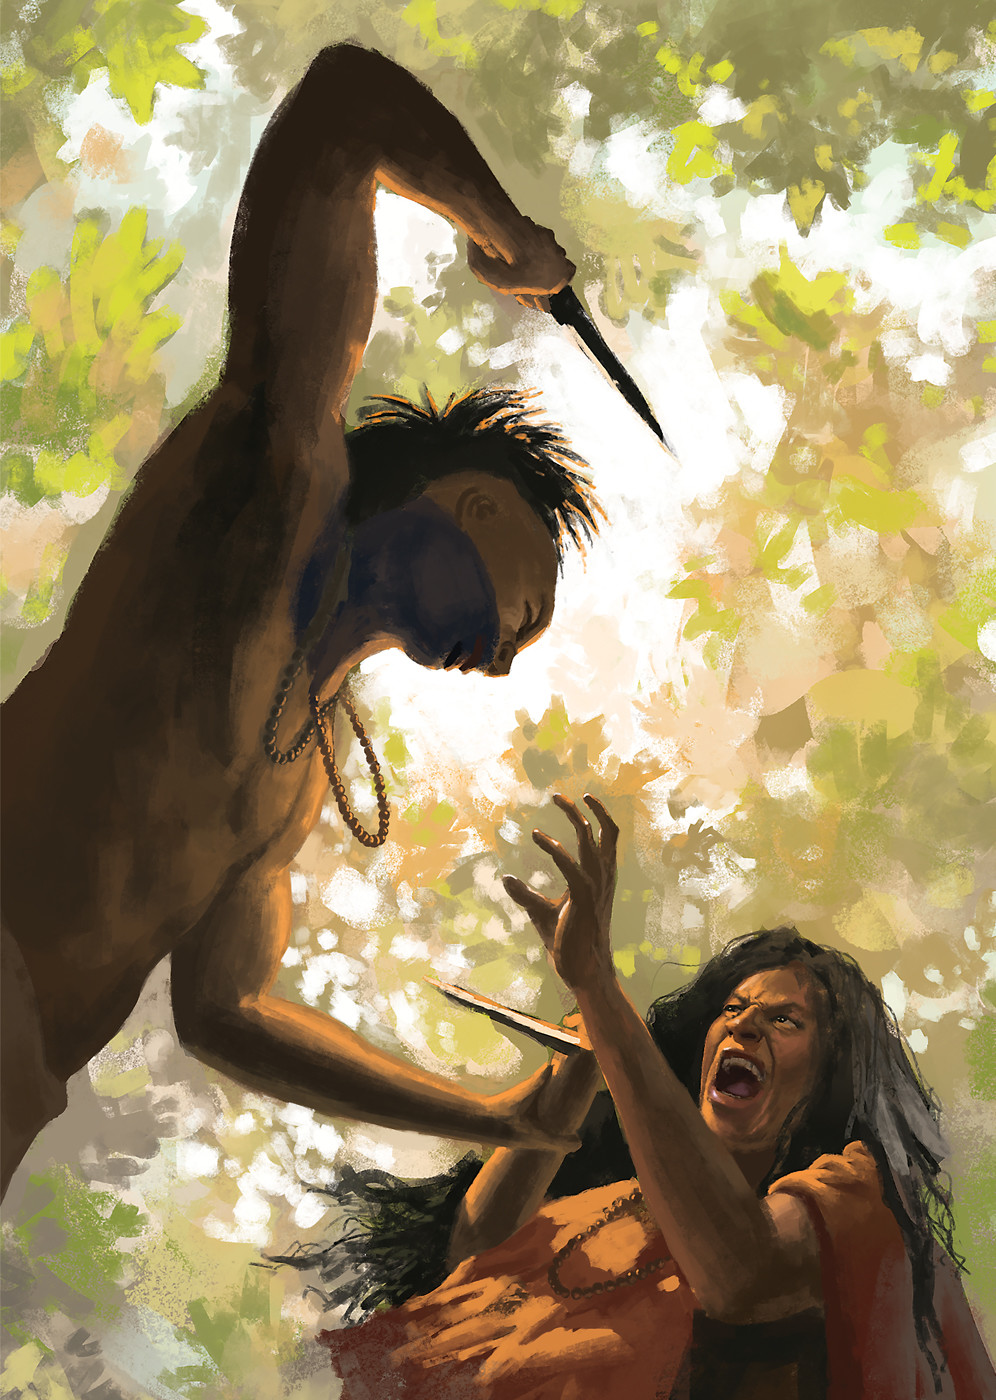 ArtStation - LAST OF THE MOHICANS Book Cover, Yasha Puzankov